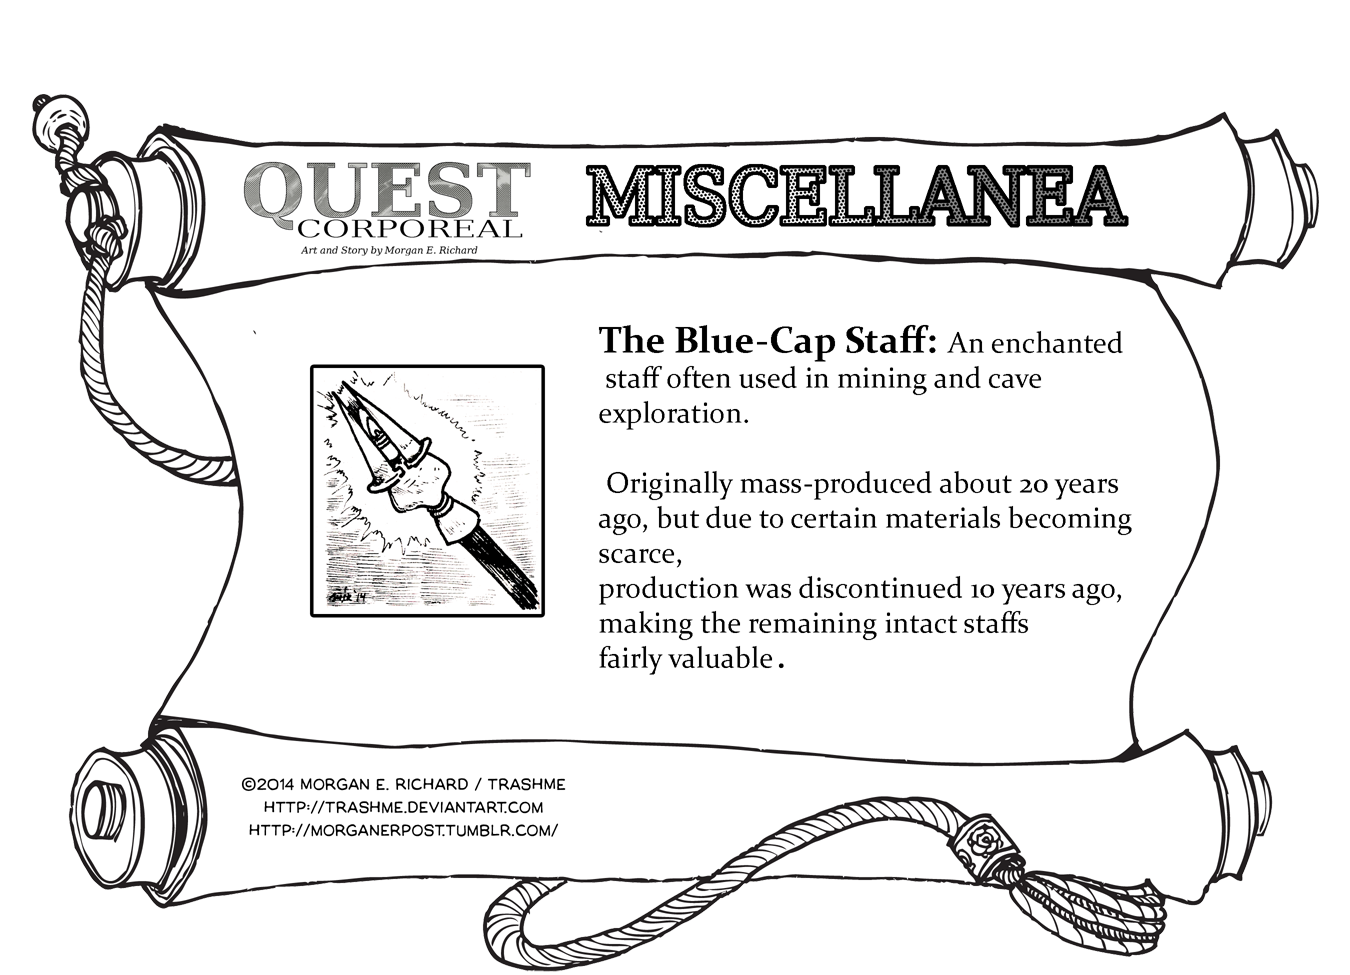 Miscellanea Corporeal: The Blue-Cap Staff